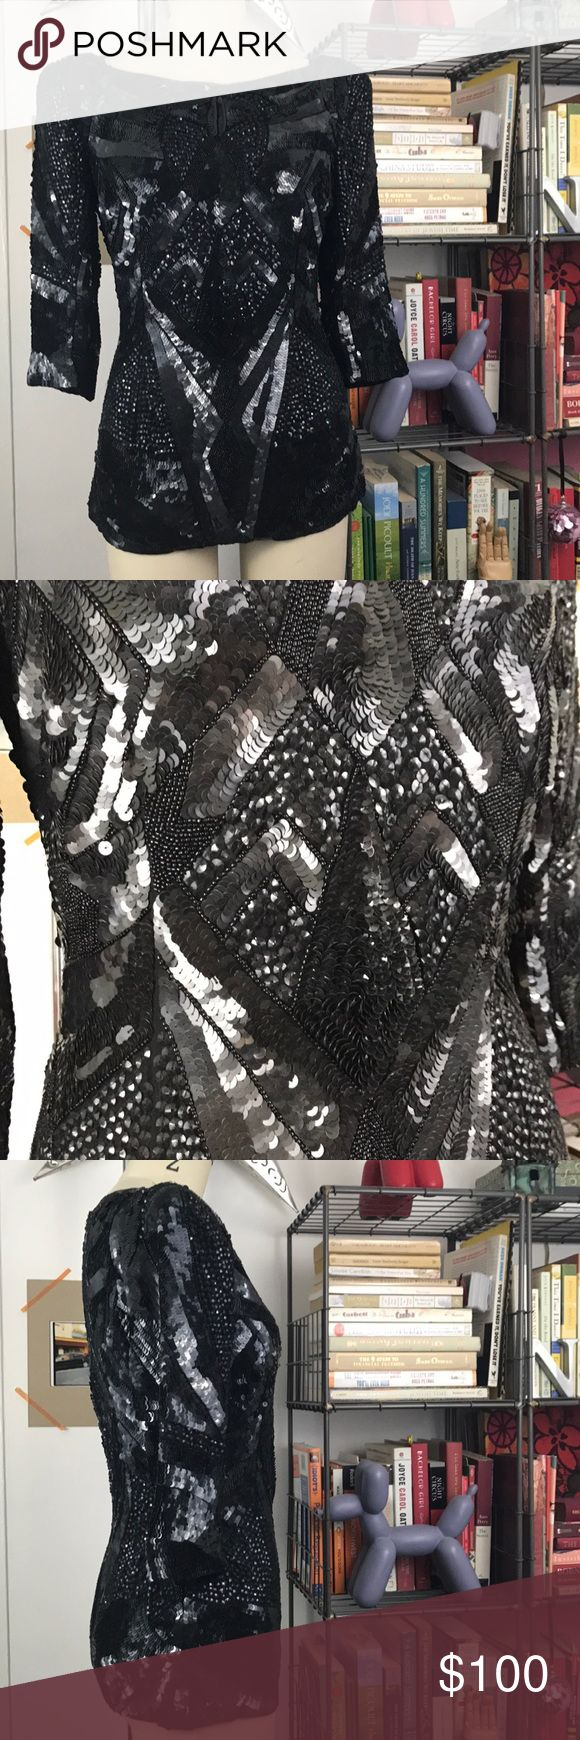 French Connection Sequined Top A strong Shoulder with light padding and concealed back zip. In excellent condition. Wear with jeans for an edgy look or slacks for any event. French Connection Tops Blouses